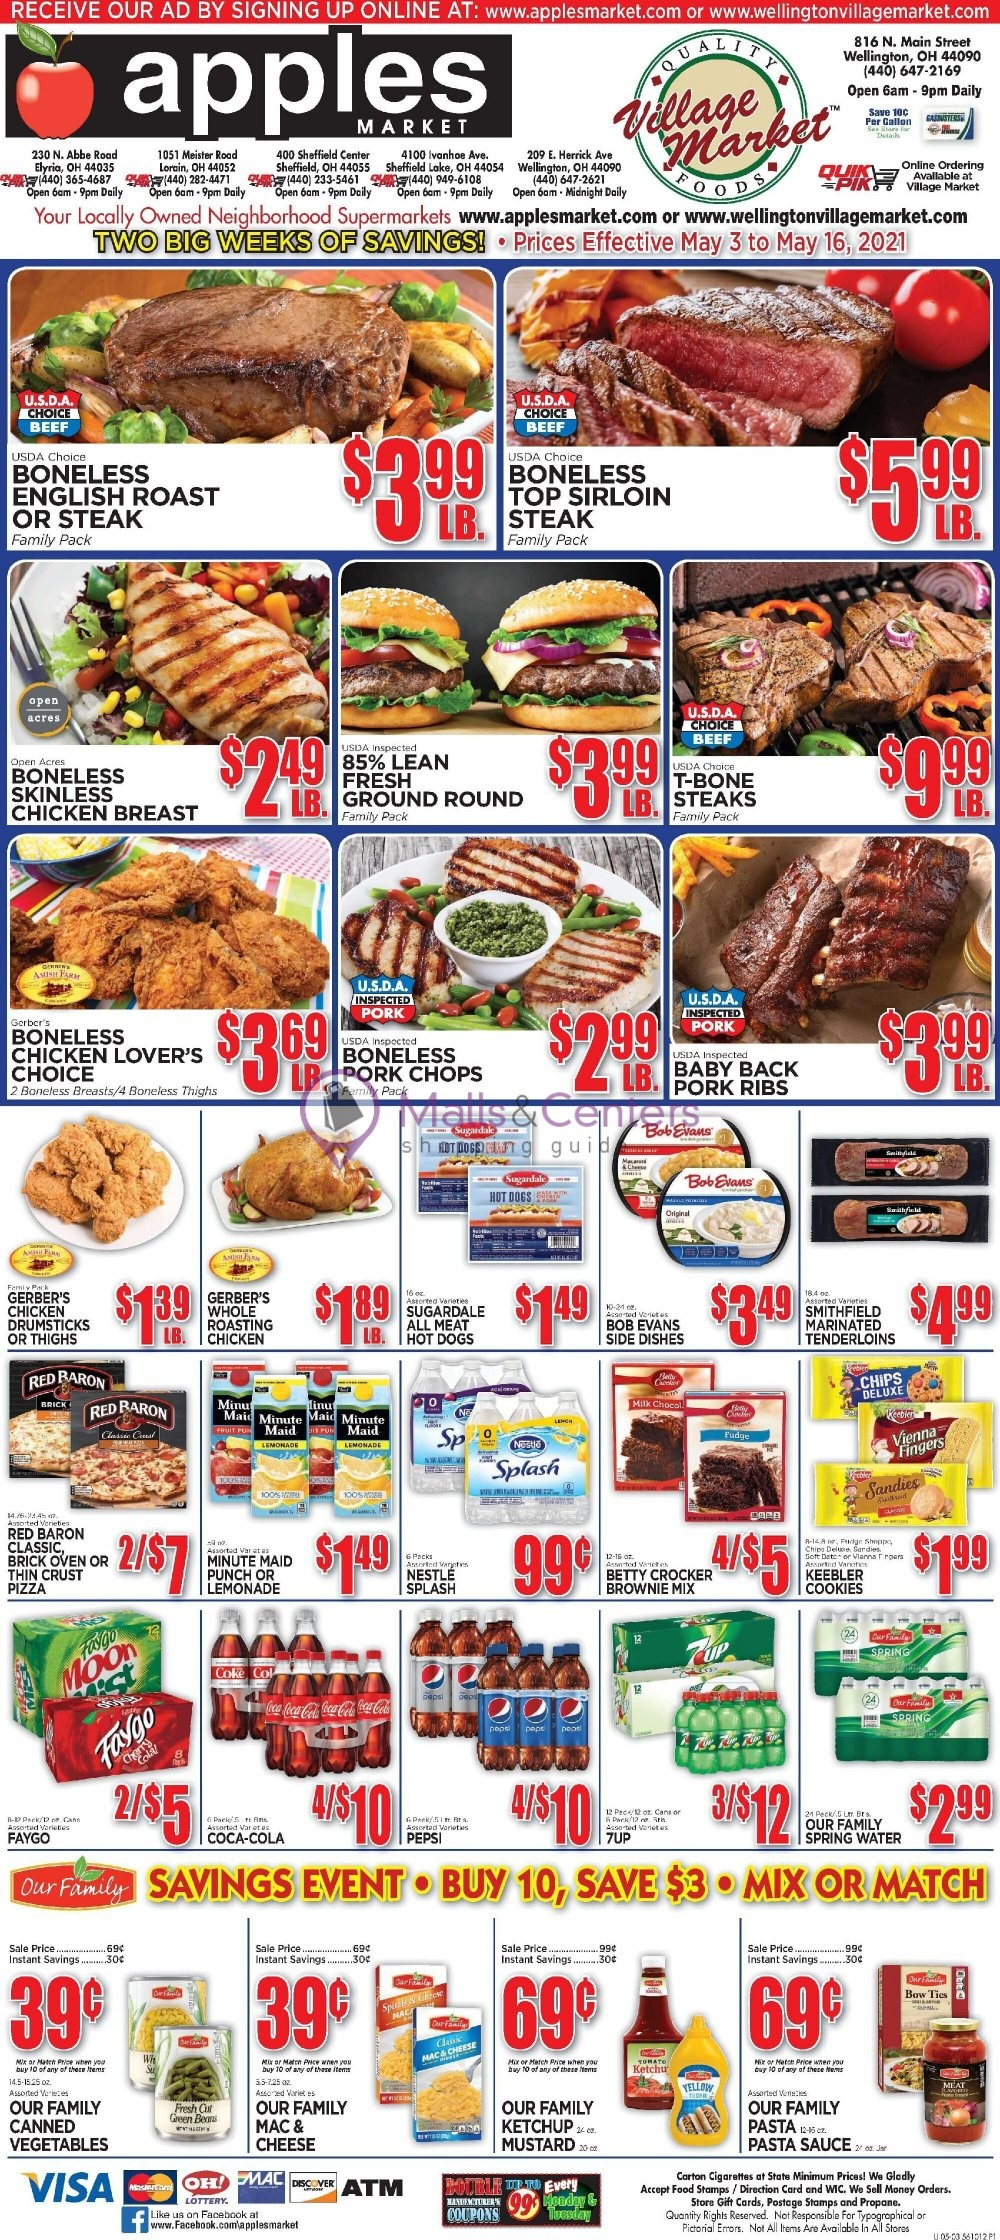 weekly ads Apples Market - page 1 - mallscenters.com